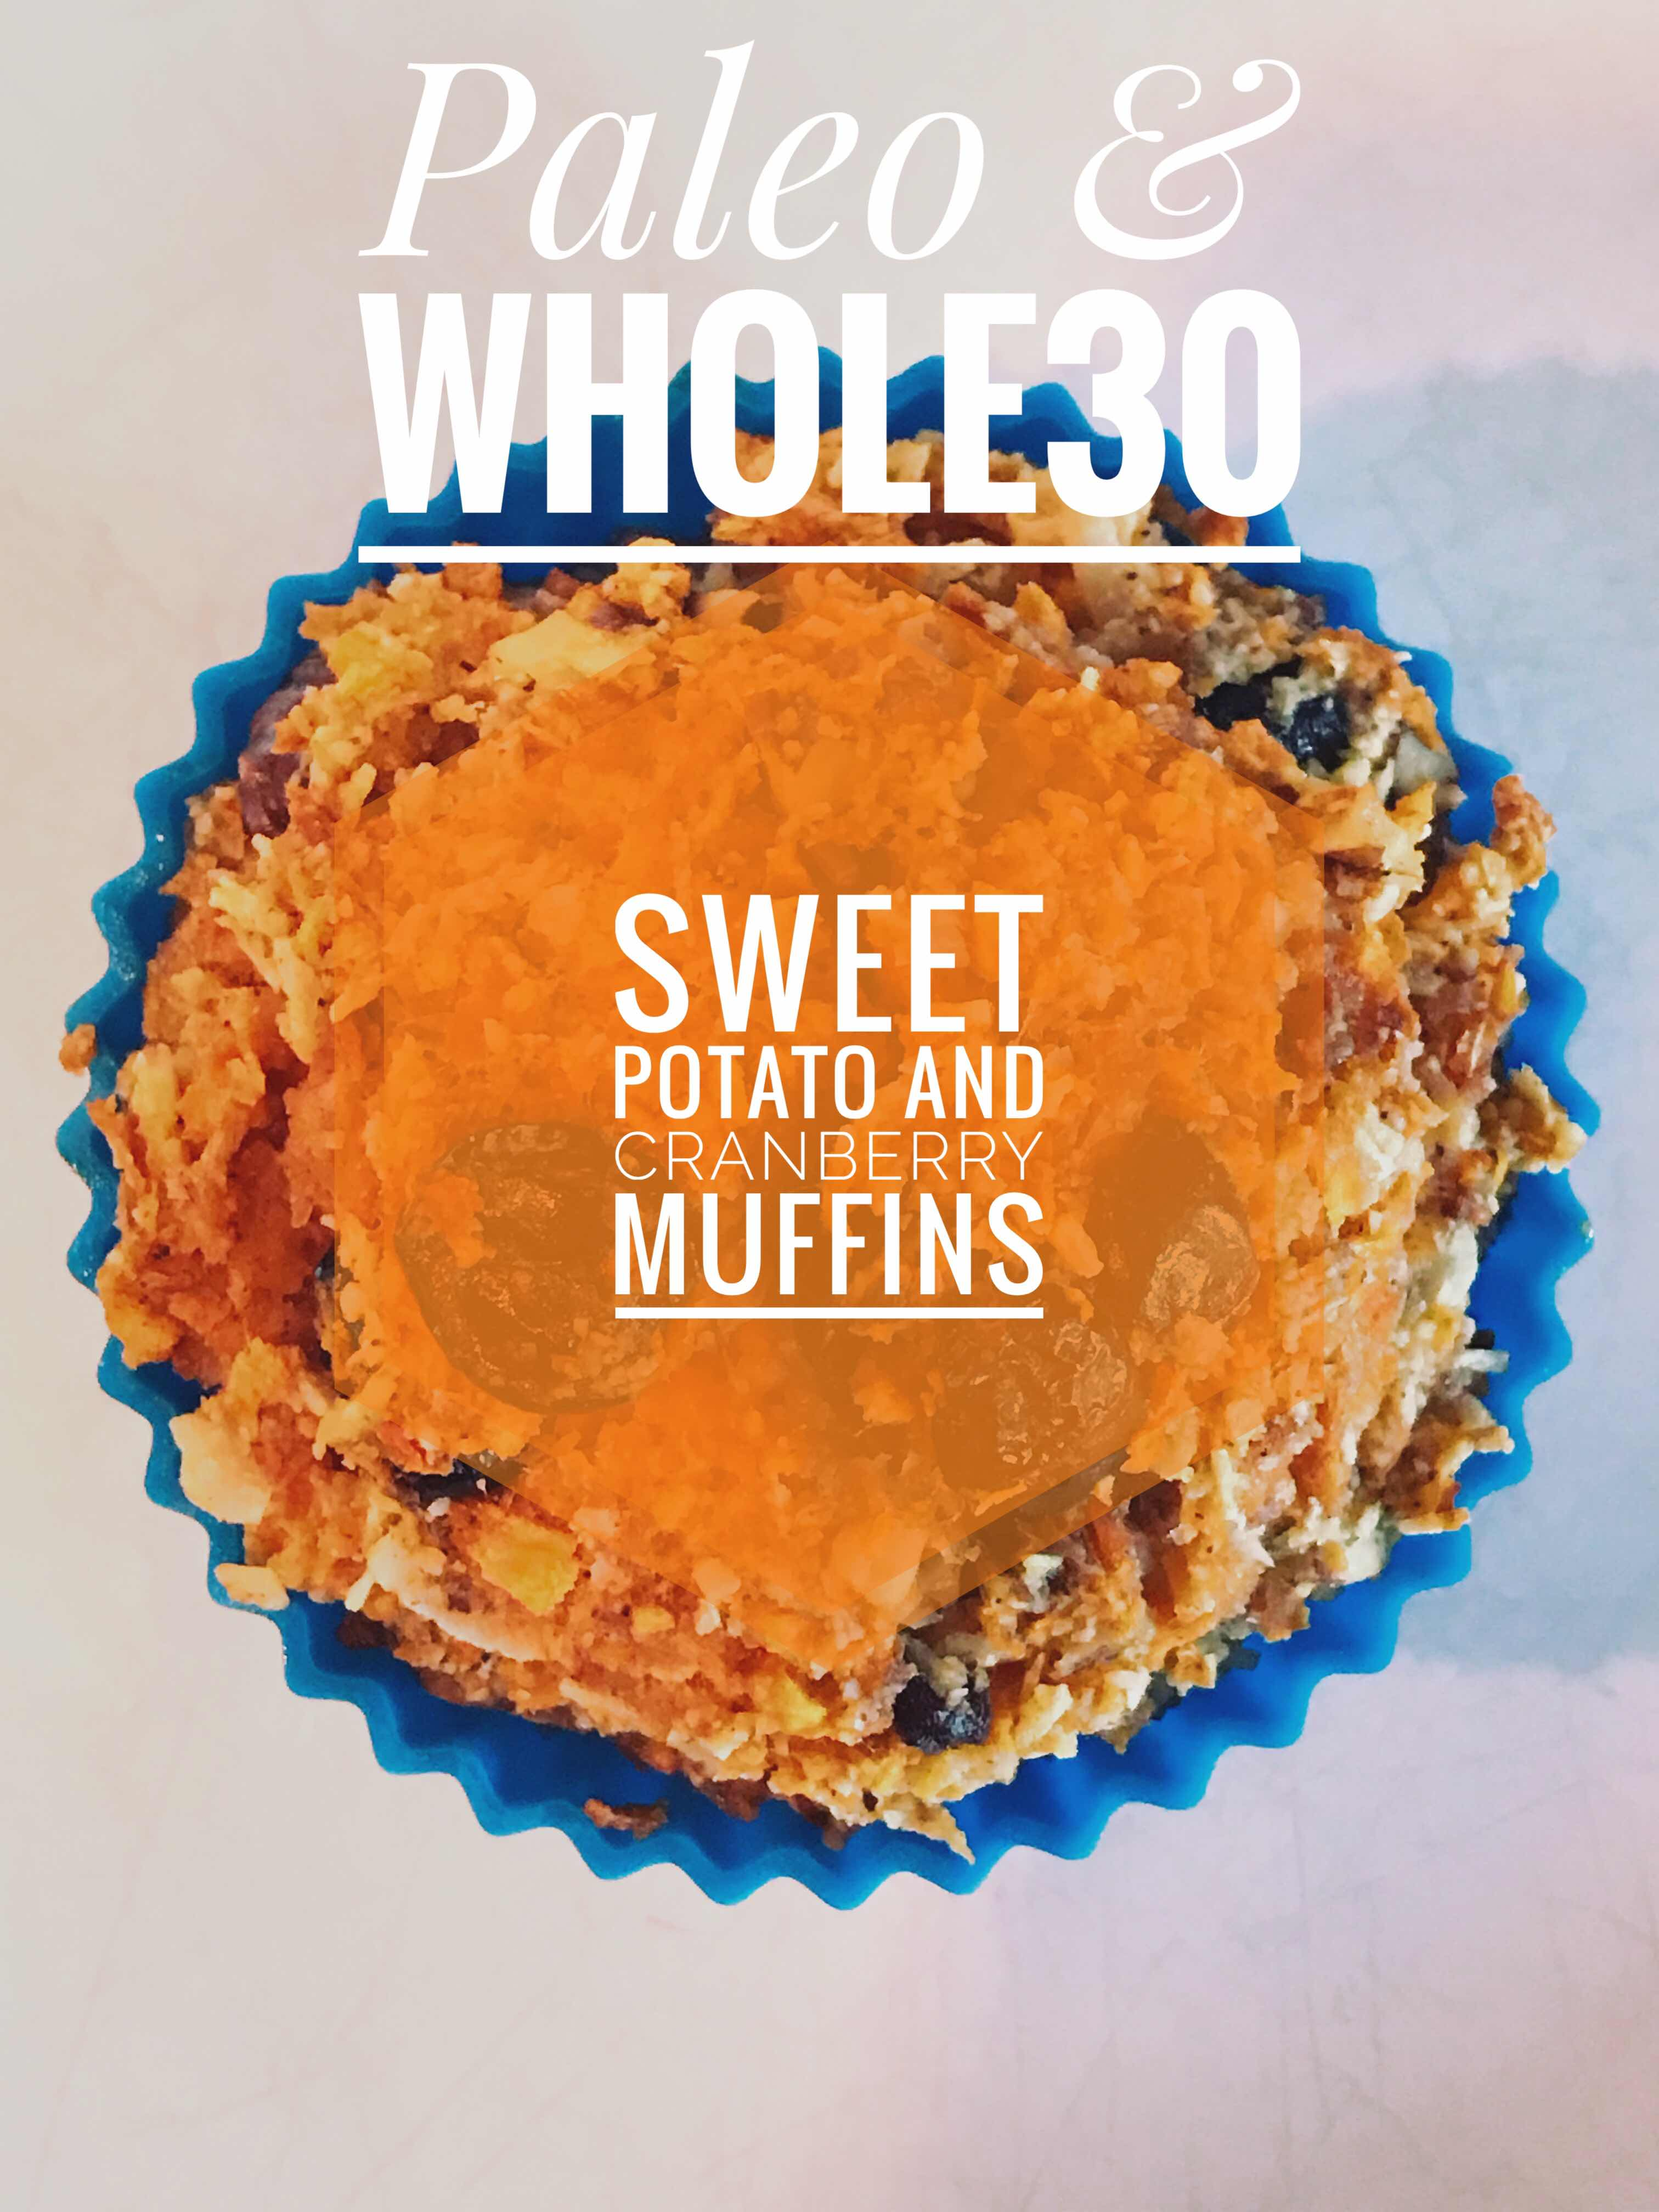 Sweet Potato and Cranberry 'Muffins'